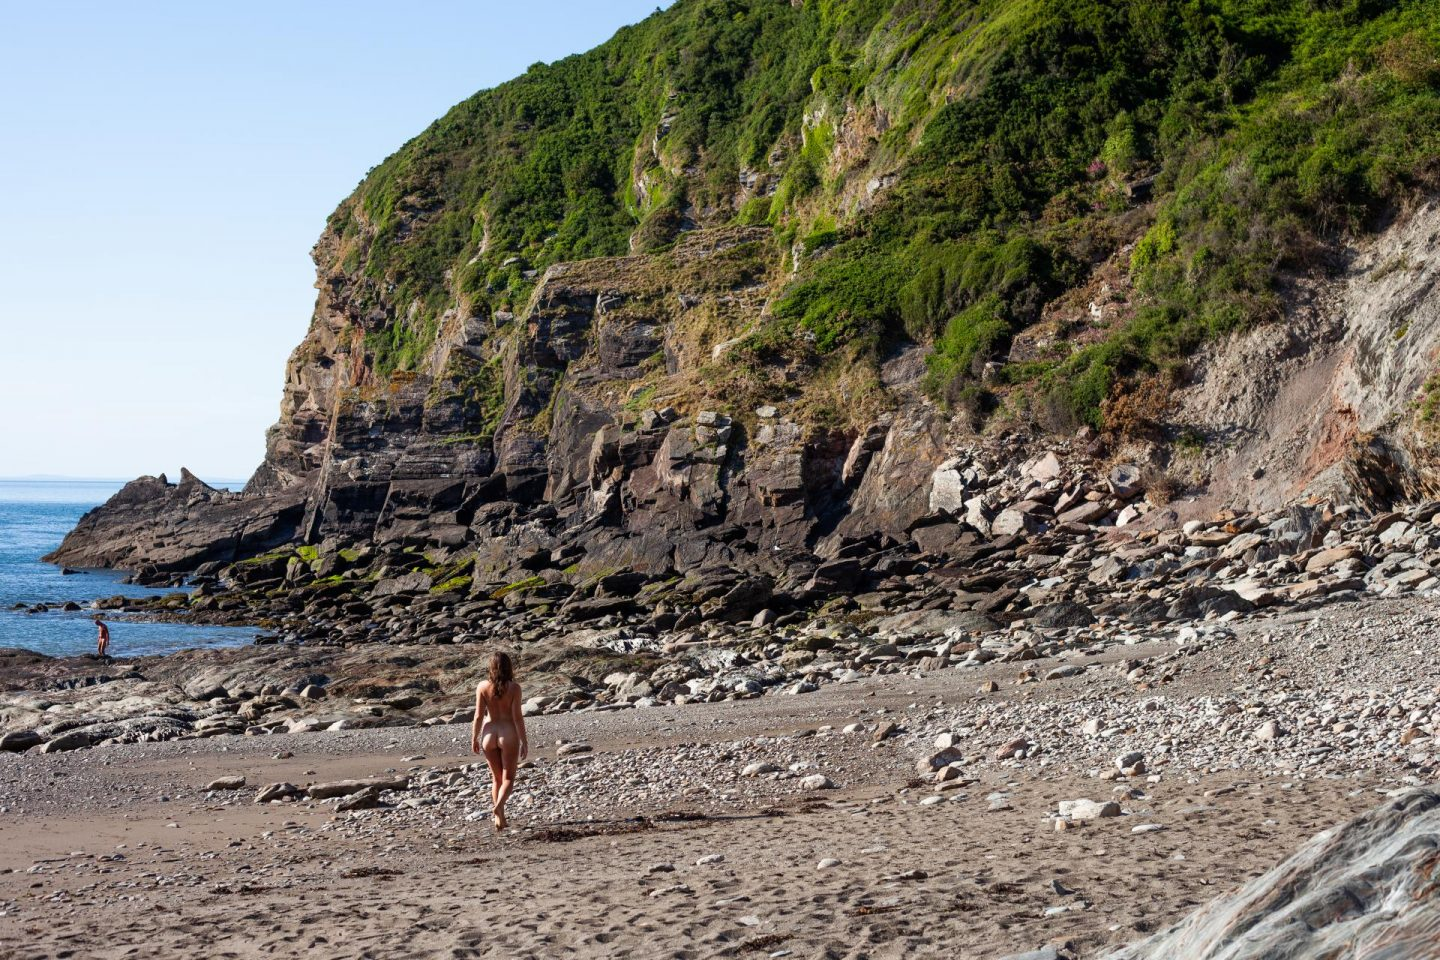 The best skinny dipping beaches in Britain